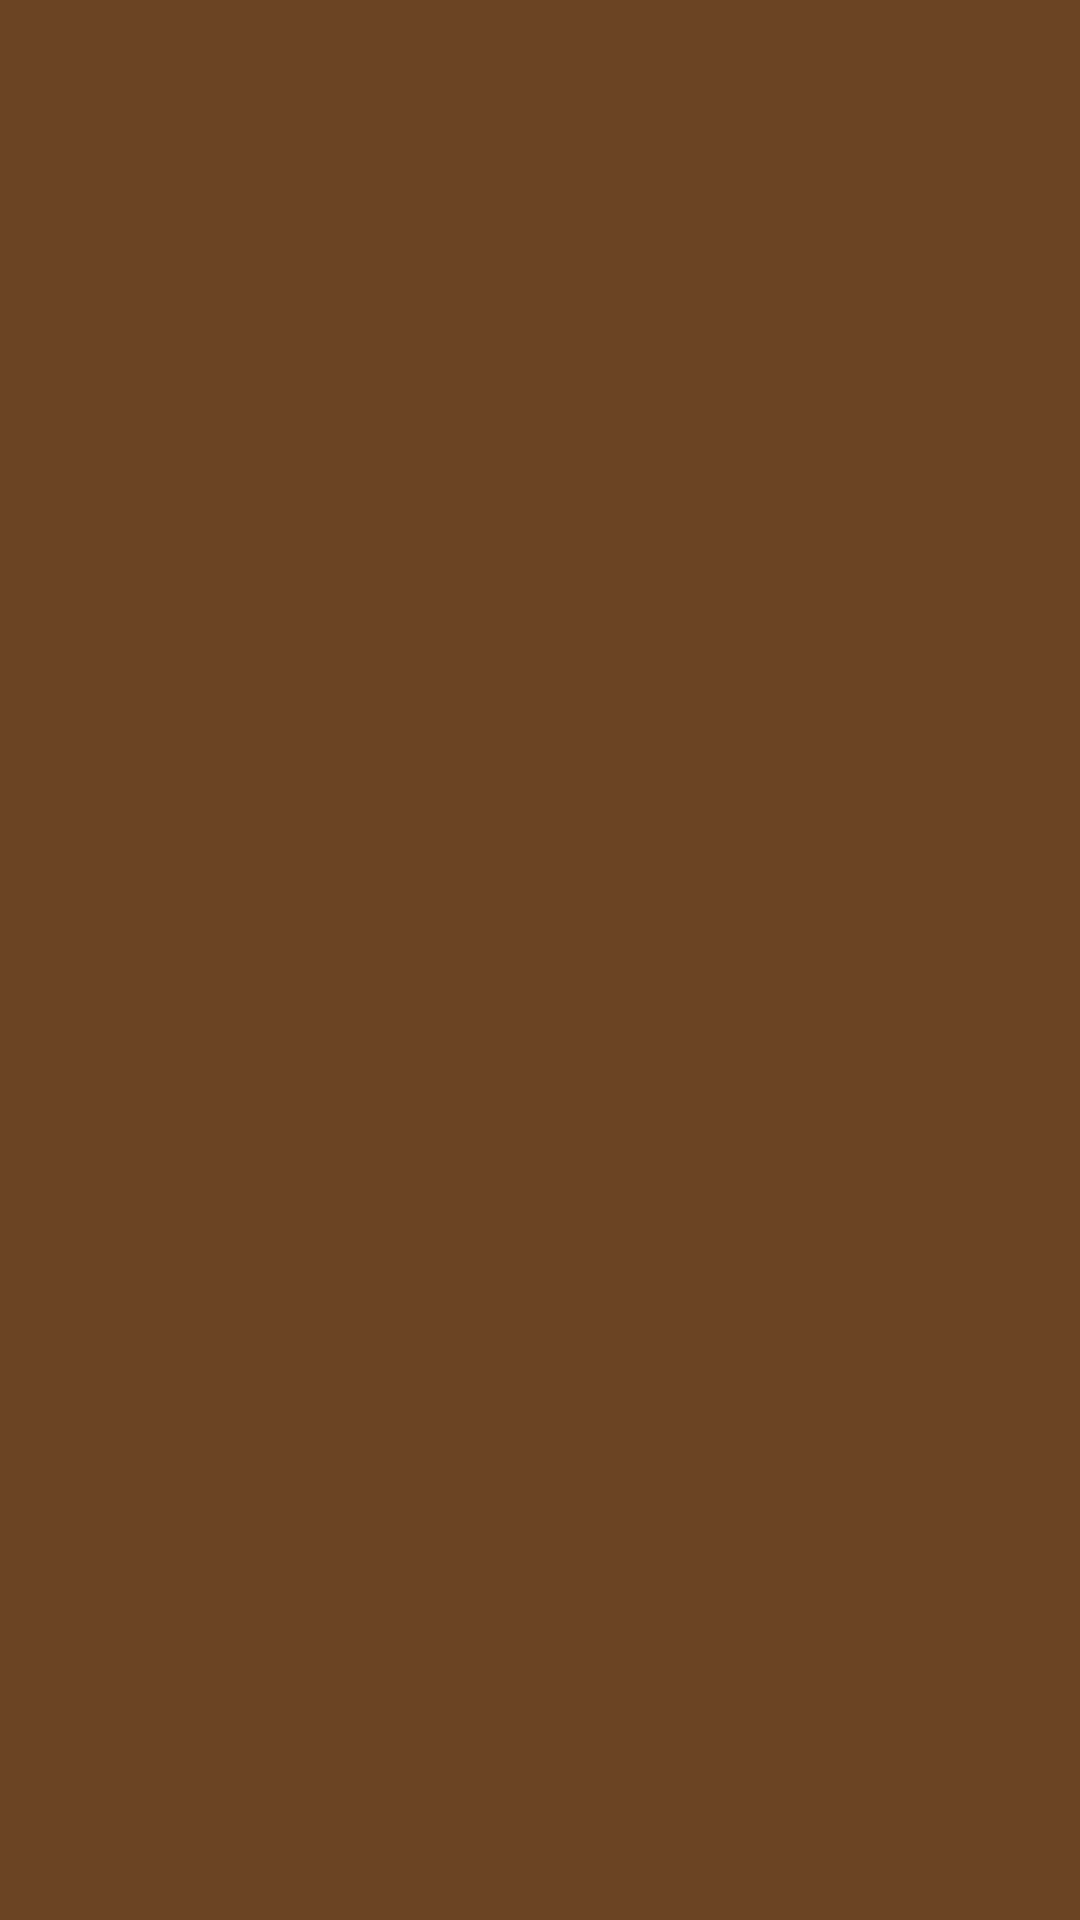 1080x1920 Flattery Solid Color Background